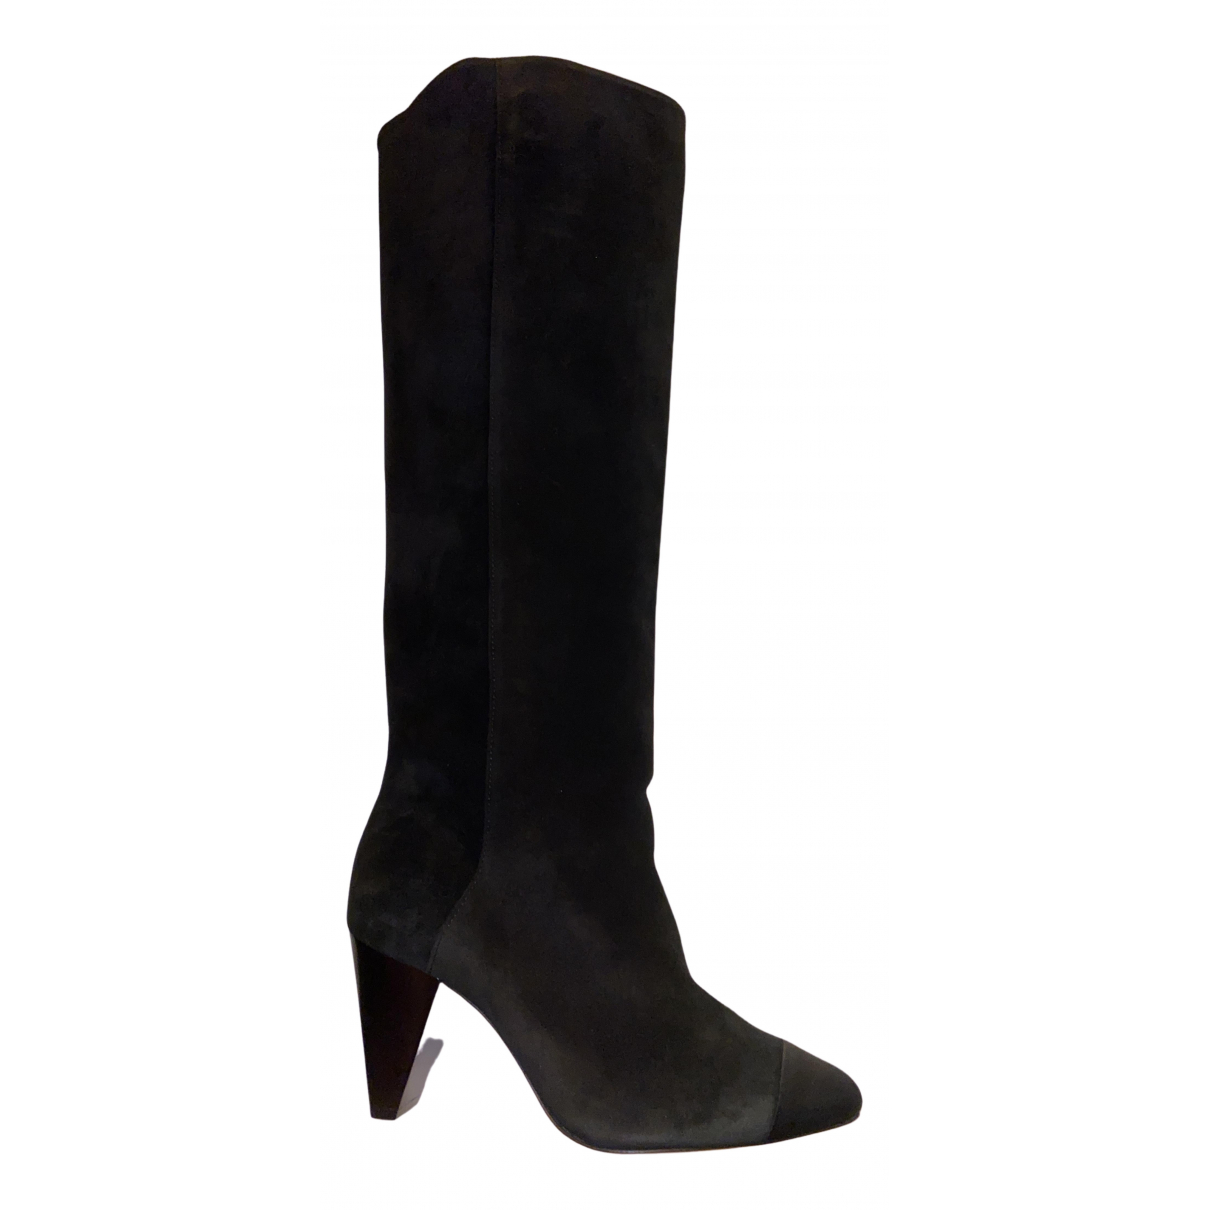 Sandro N Black Suede Boots for Women 37 EU